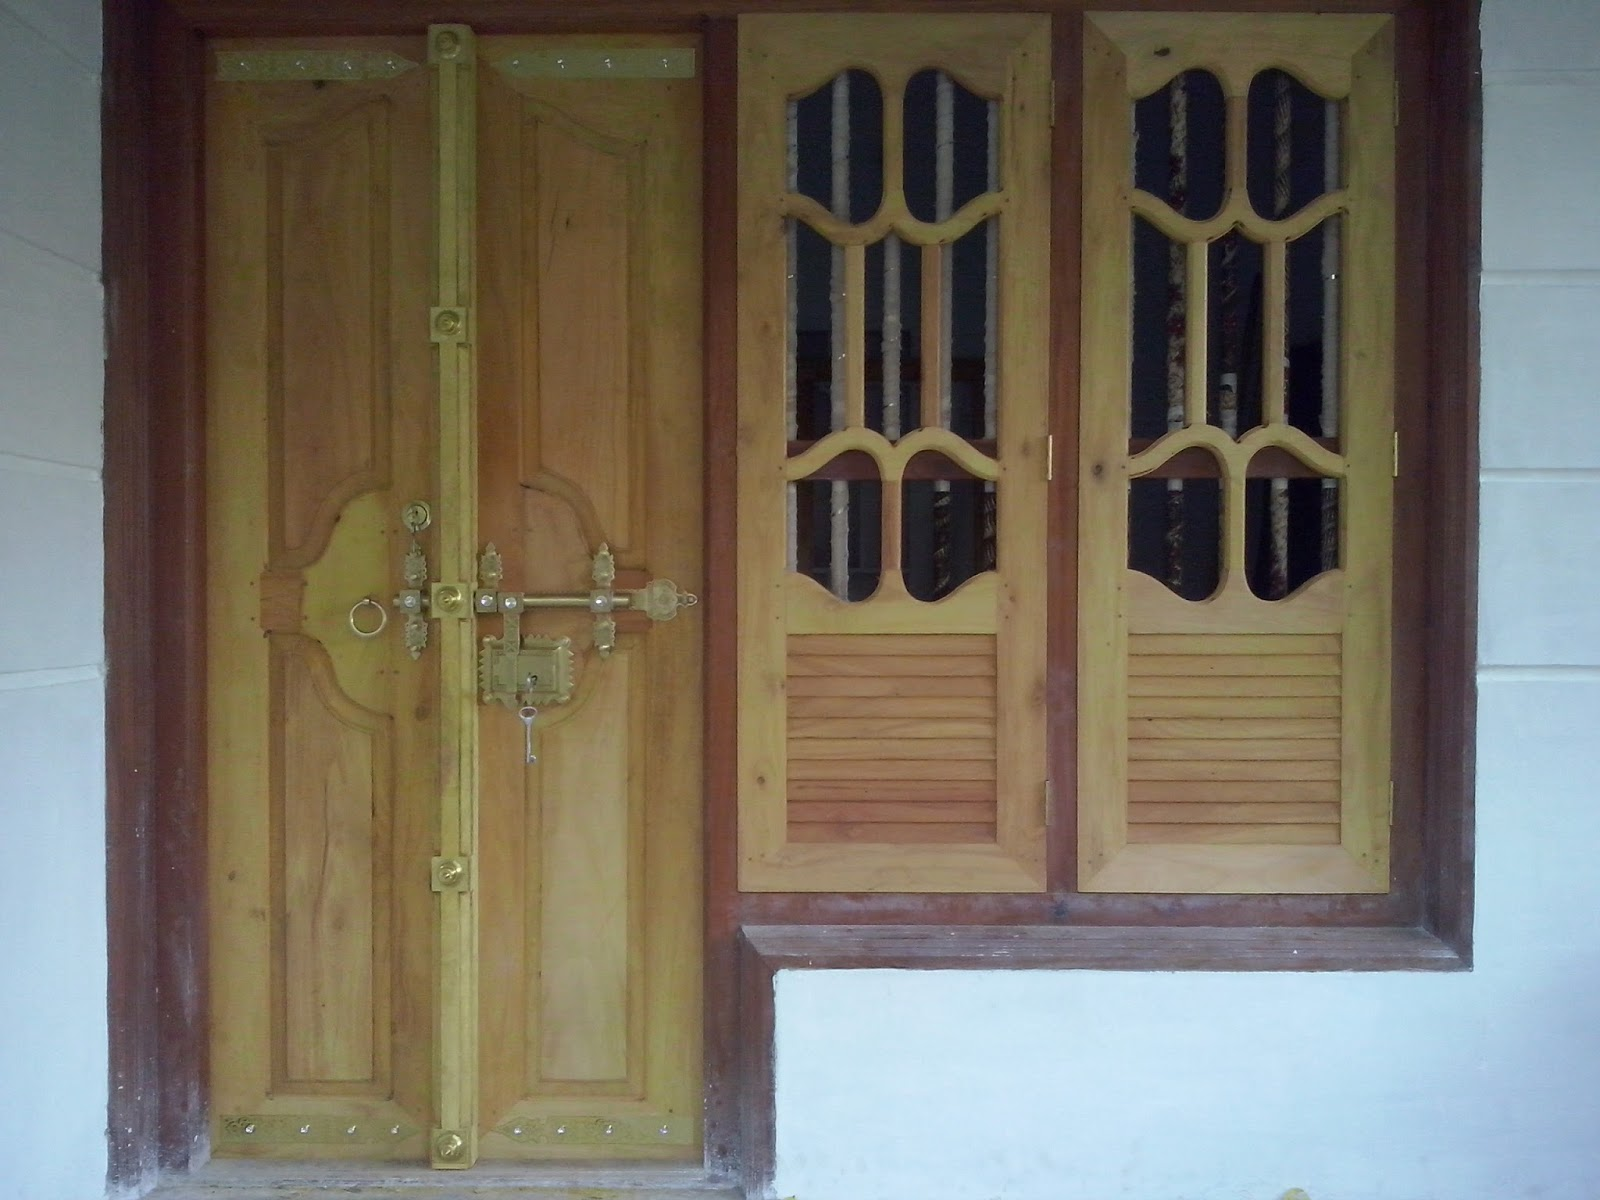 Kerala style carpenter works and designs september 2013 for New design door and window